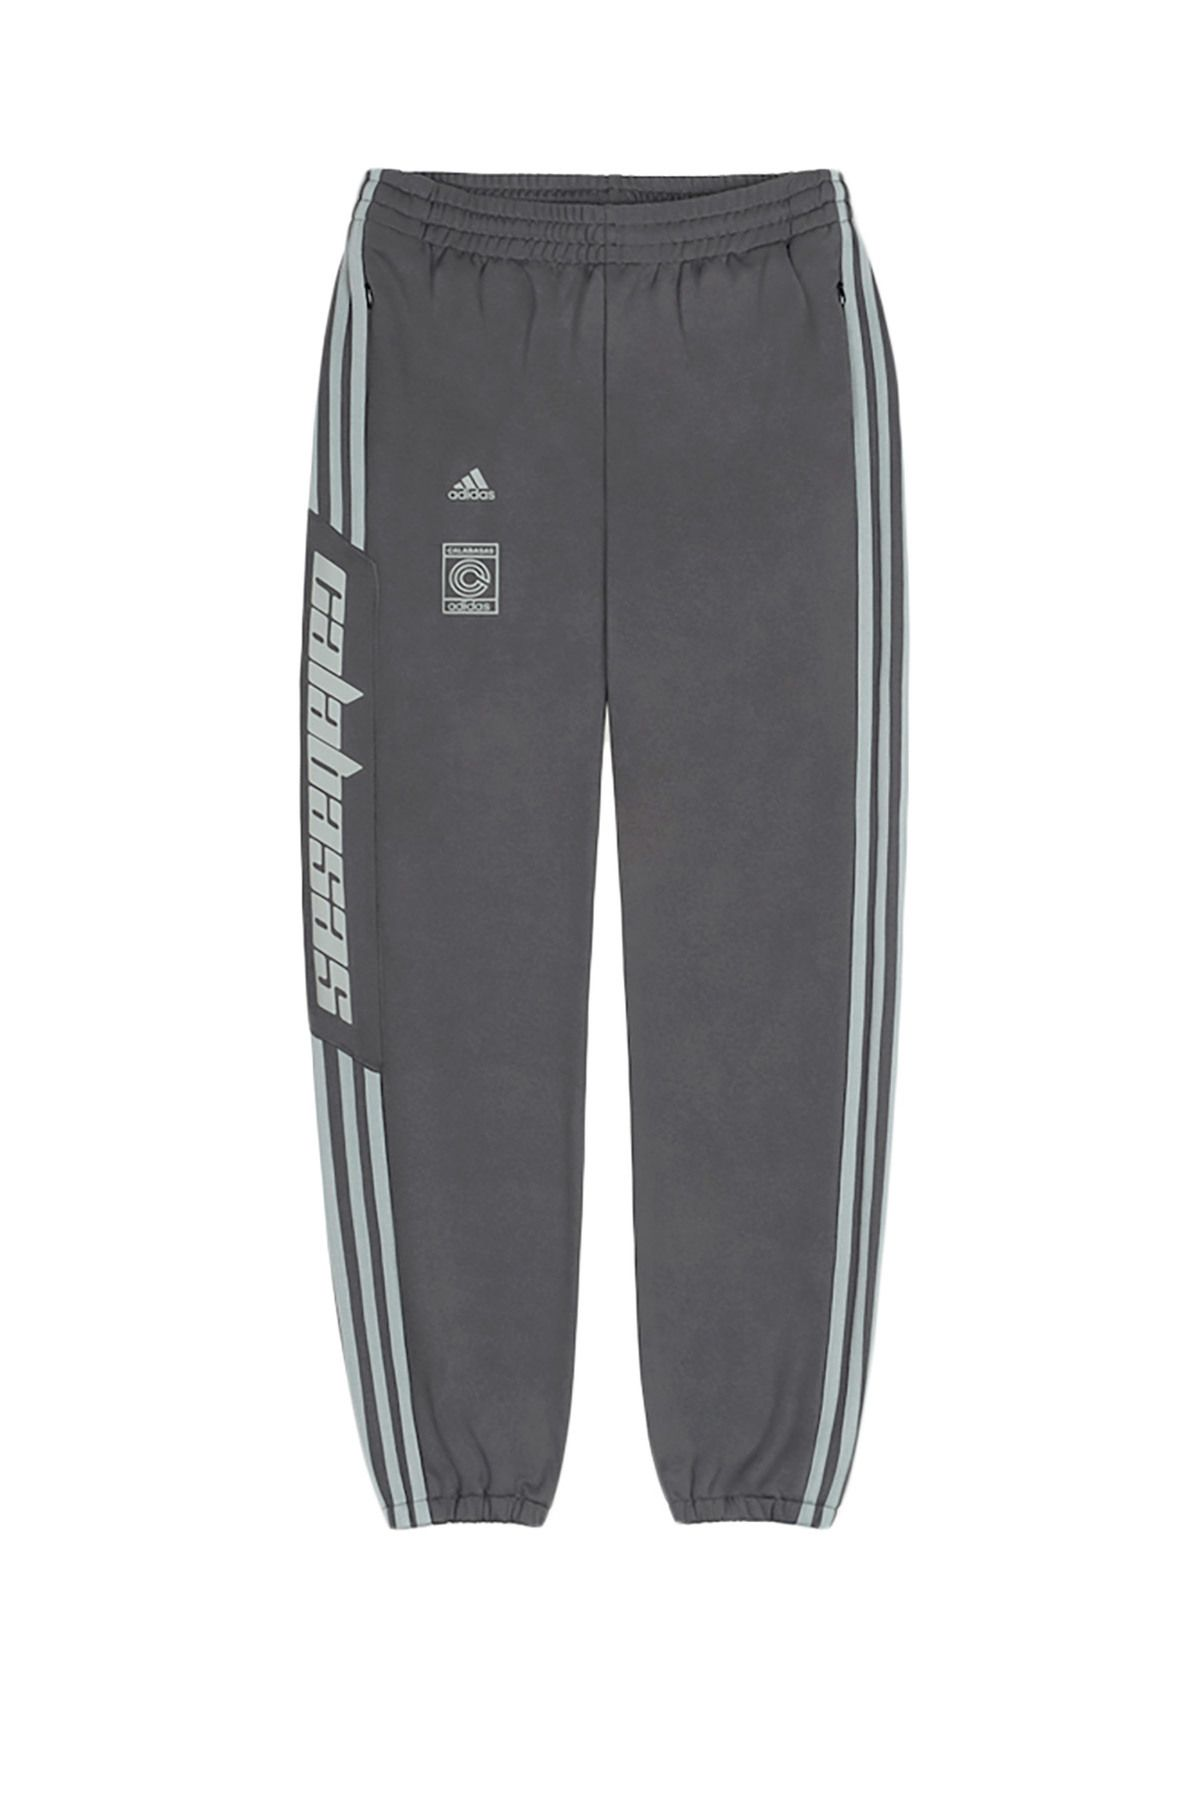 8fcdb7ac YEEZY, Calabasas Track Pant The Calabasas Track pant is the ultimate  iconic, sports‑inspired everyday staple piece for fall. The pants feature  zip pockets, ...